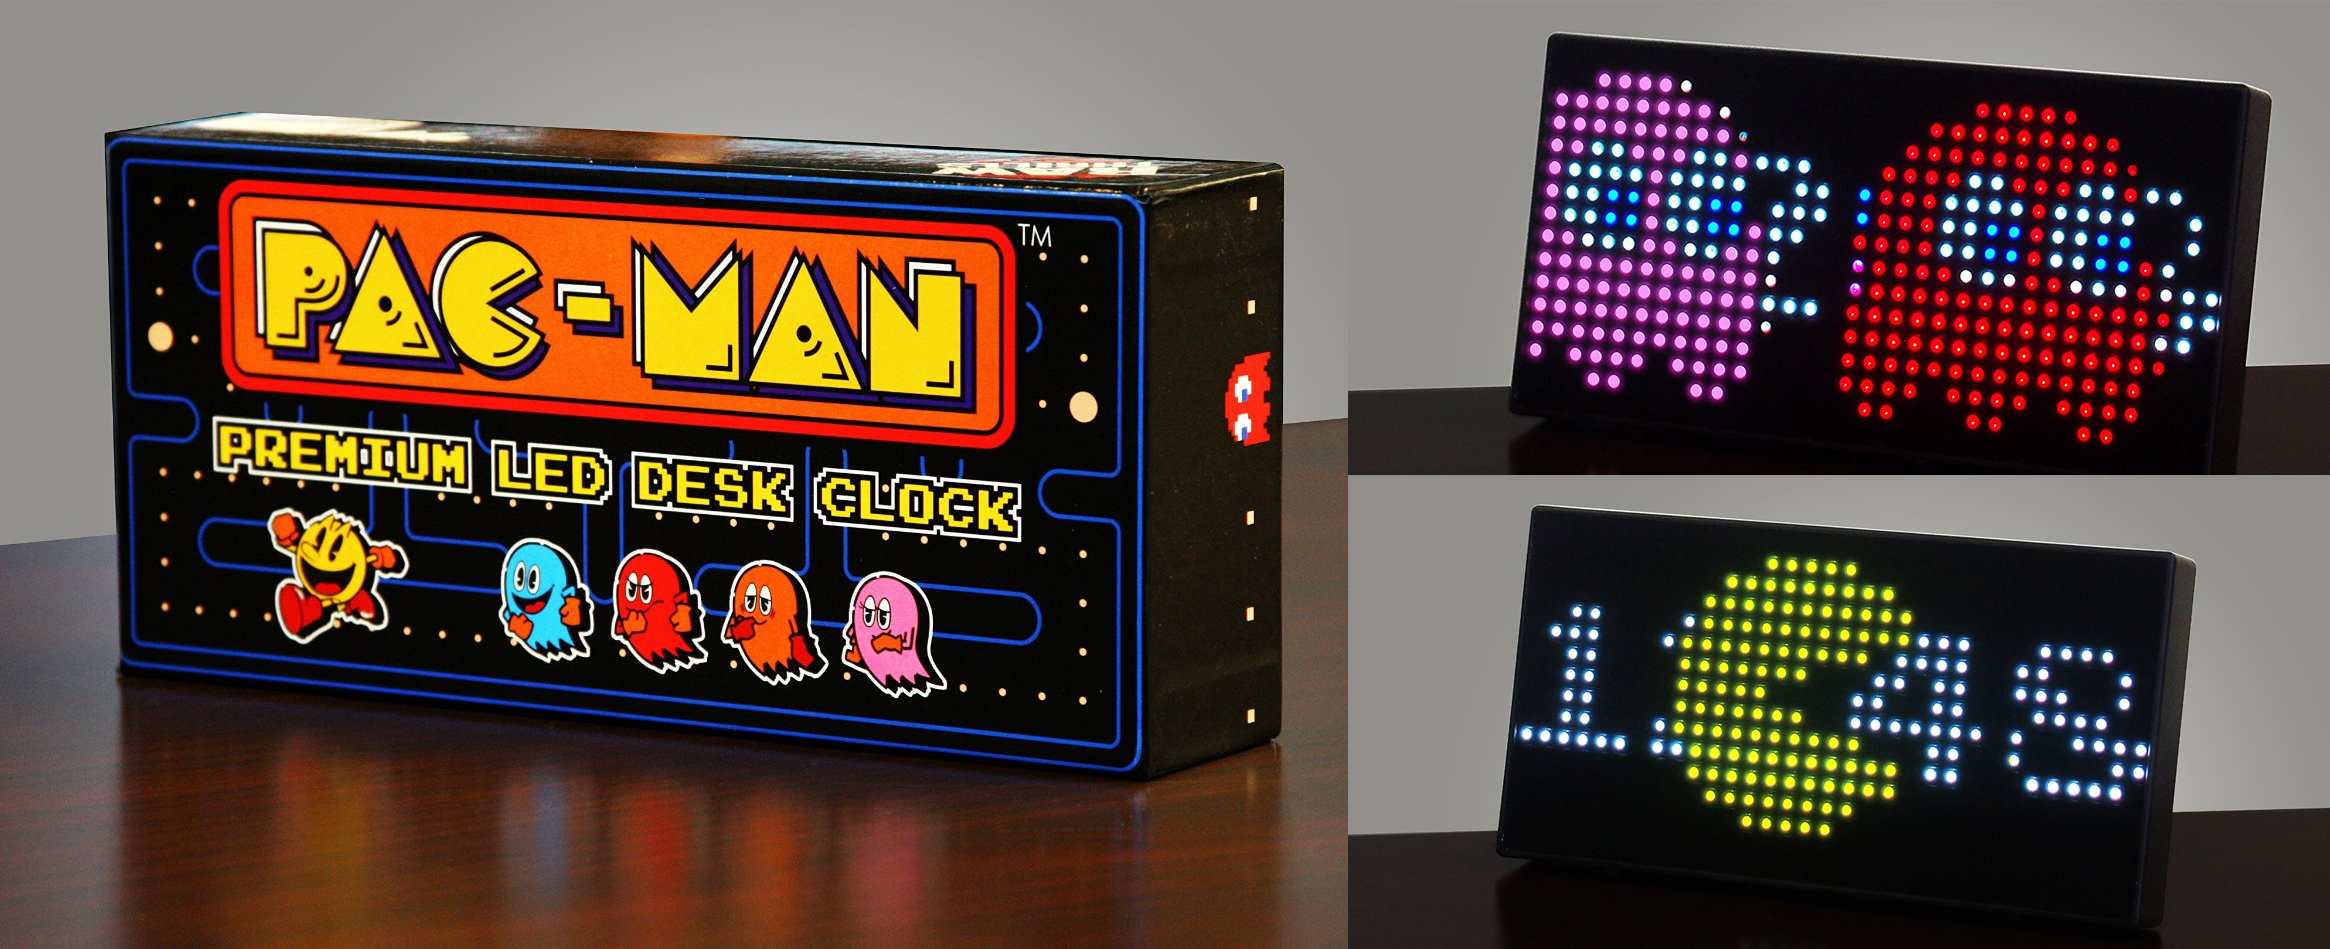 unique-gift-ideas-for-her-ac-man-premium-led-desk-clock